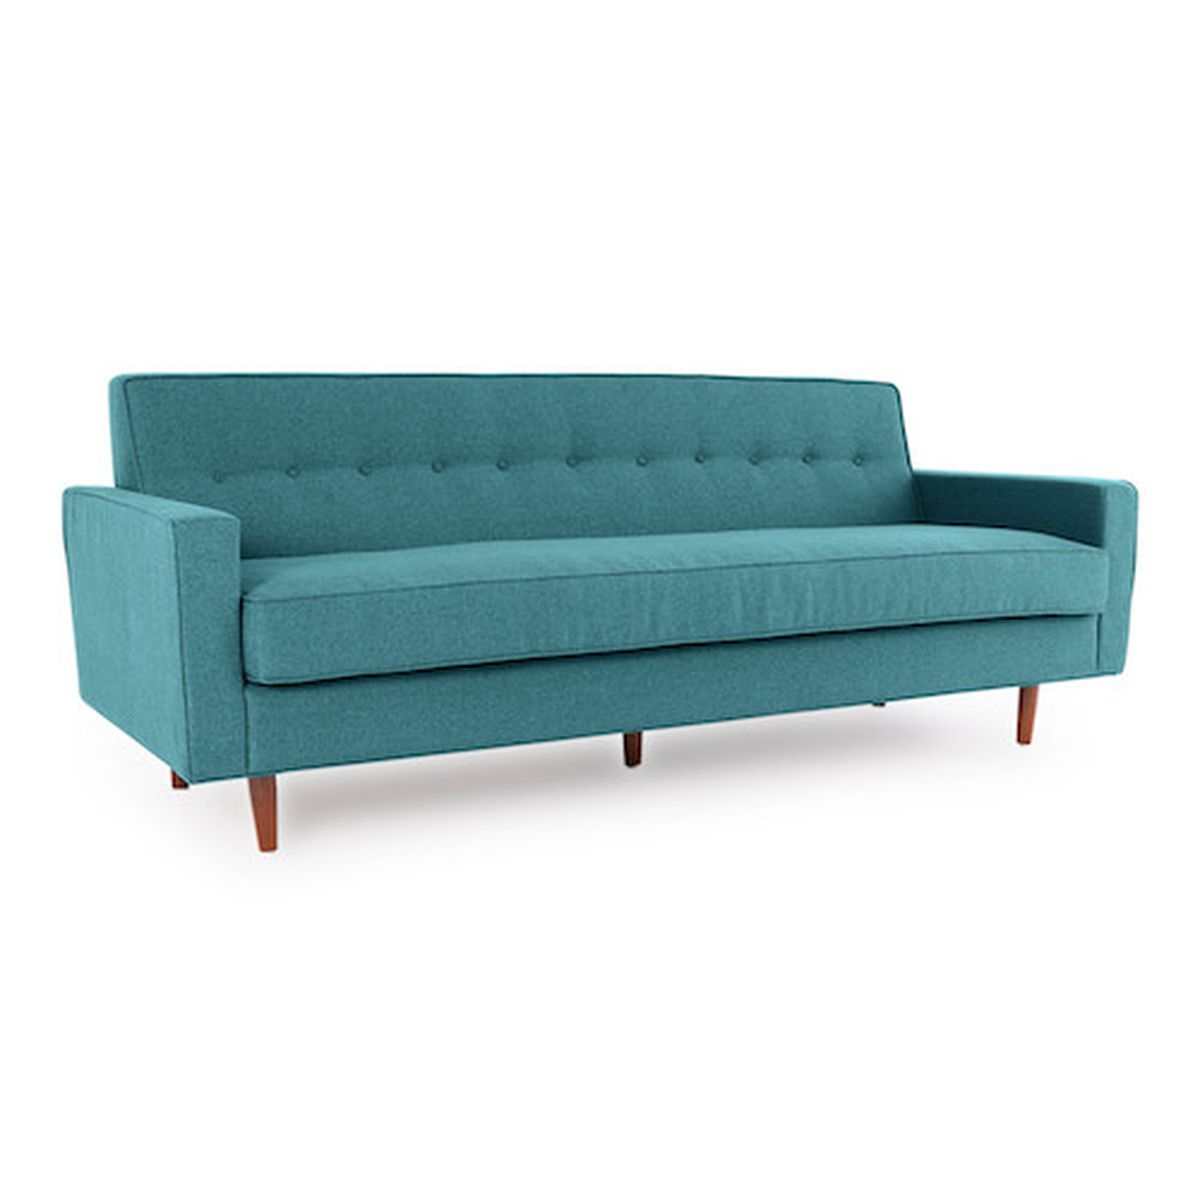 sofas under 2000 no sew sofa pillow covers 5 midcentury style 2 000 curbed